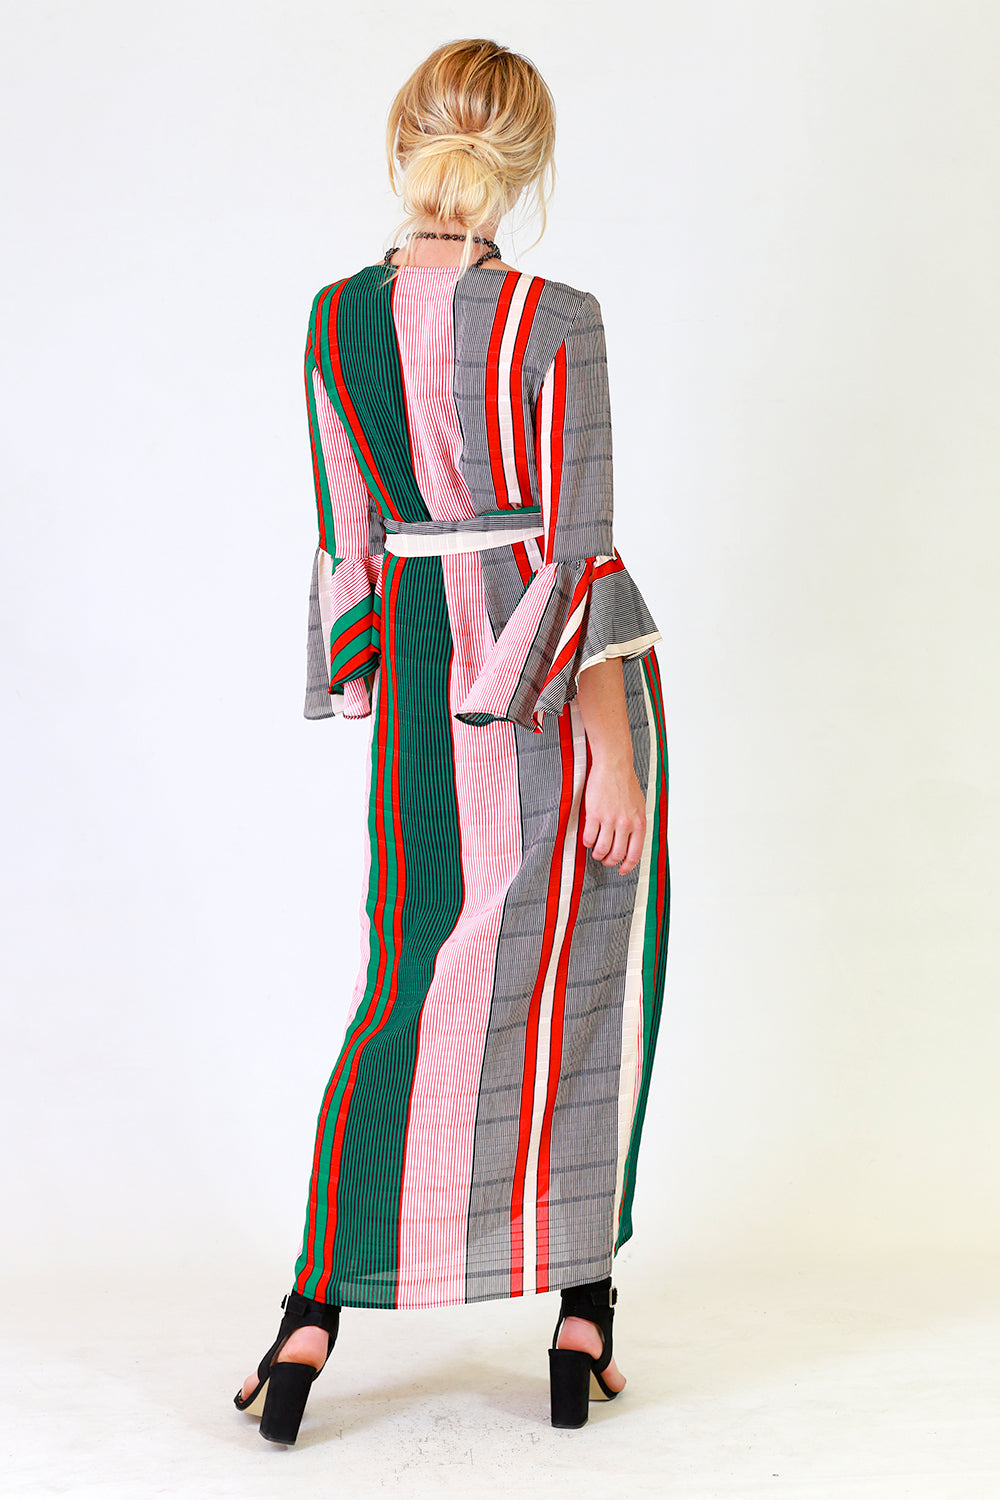 Carah Wrap Dress, Annah Stretton AW19, Wrap Around Dress, Shot on Model